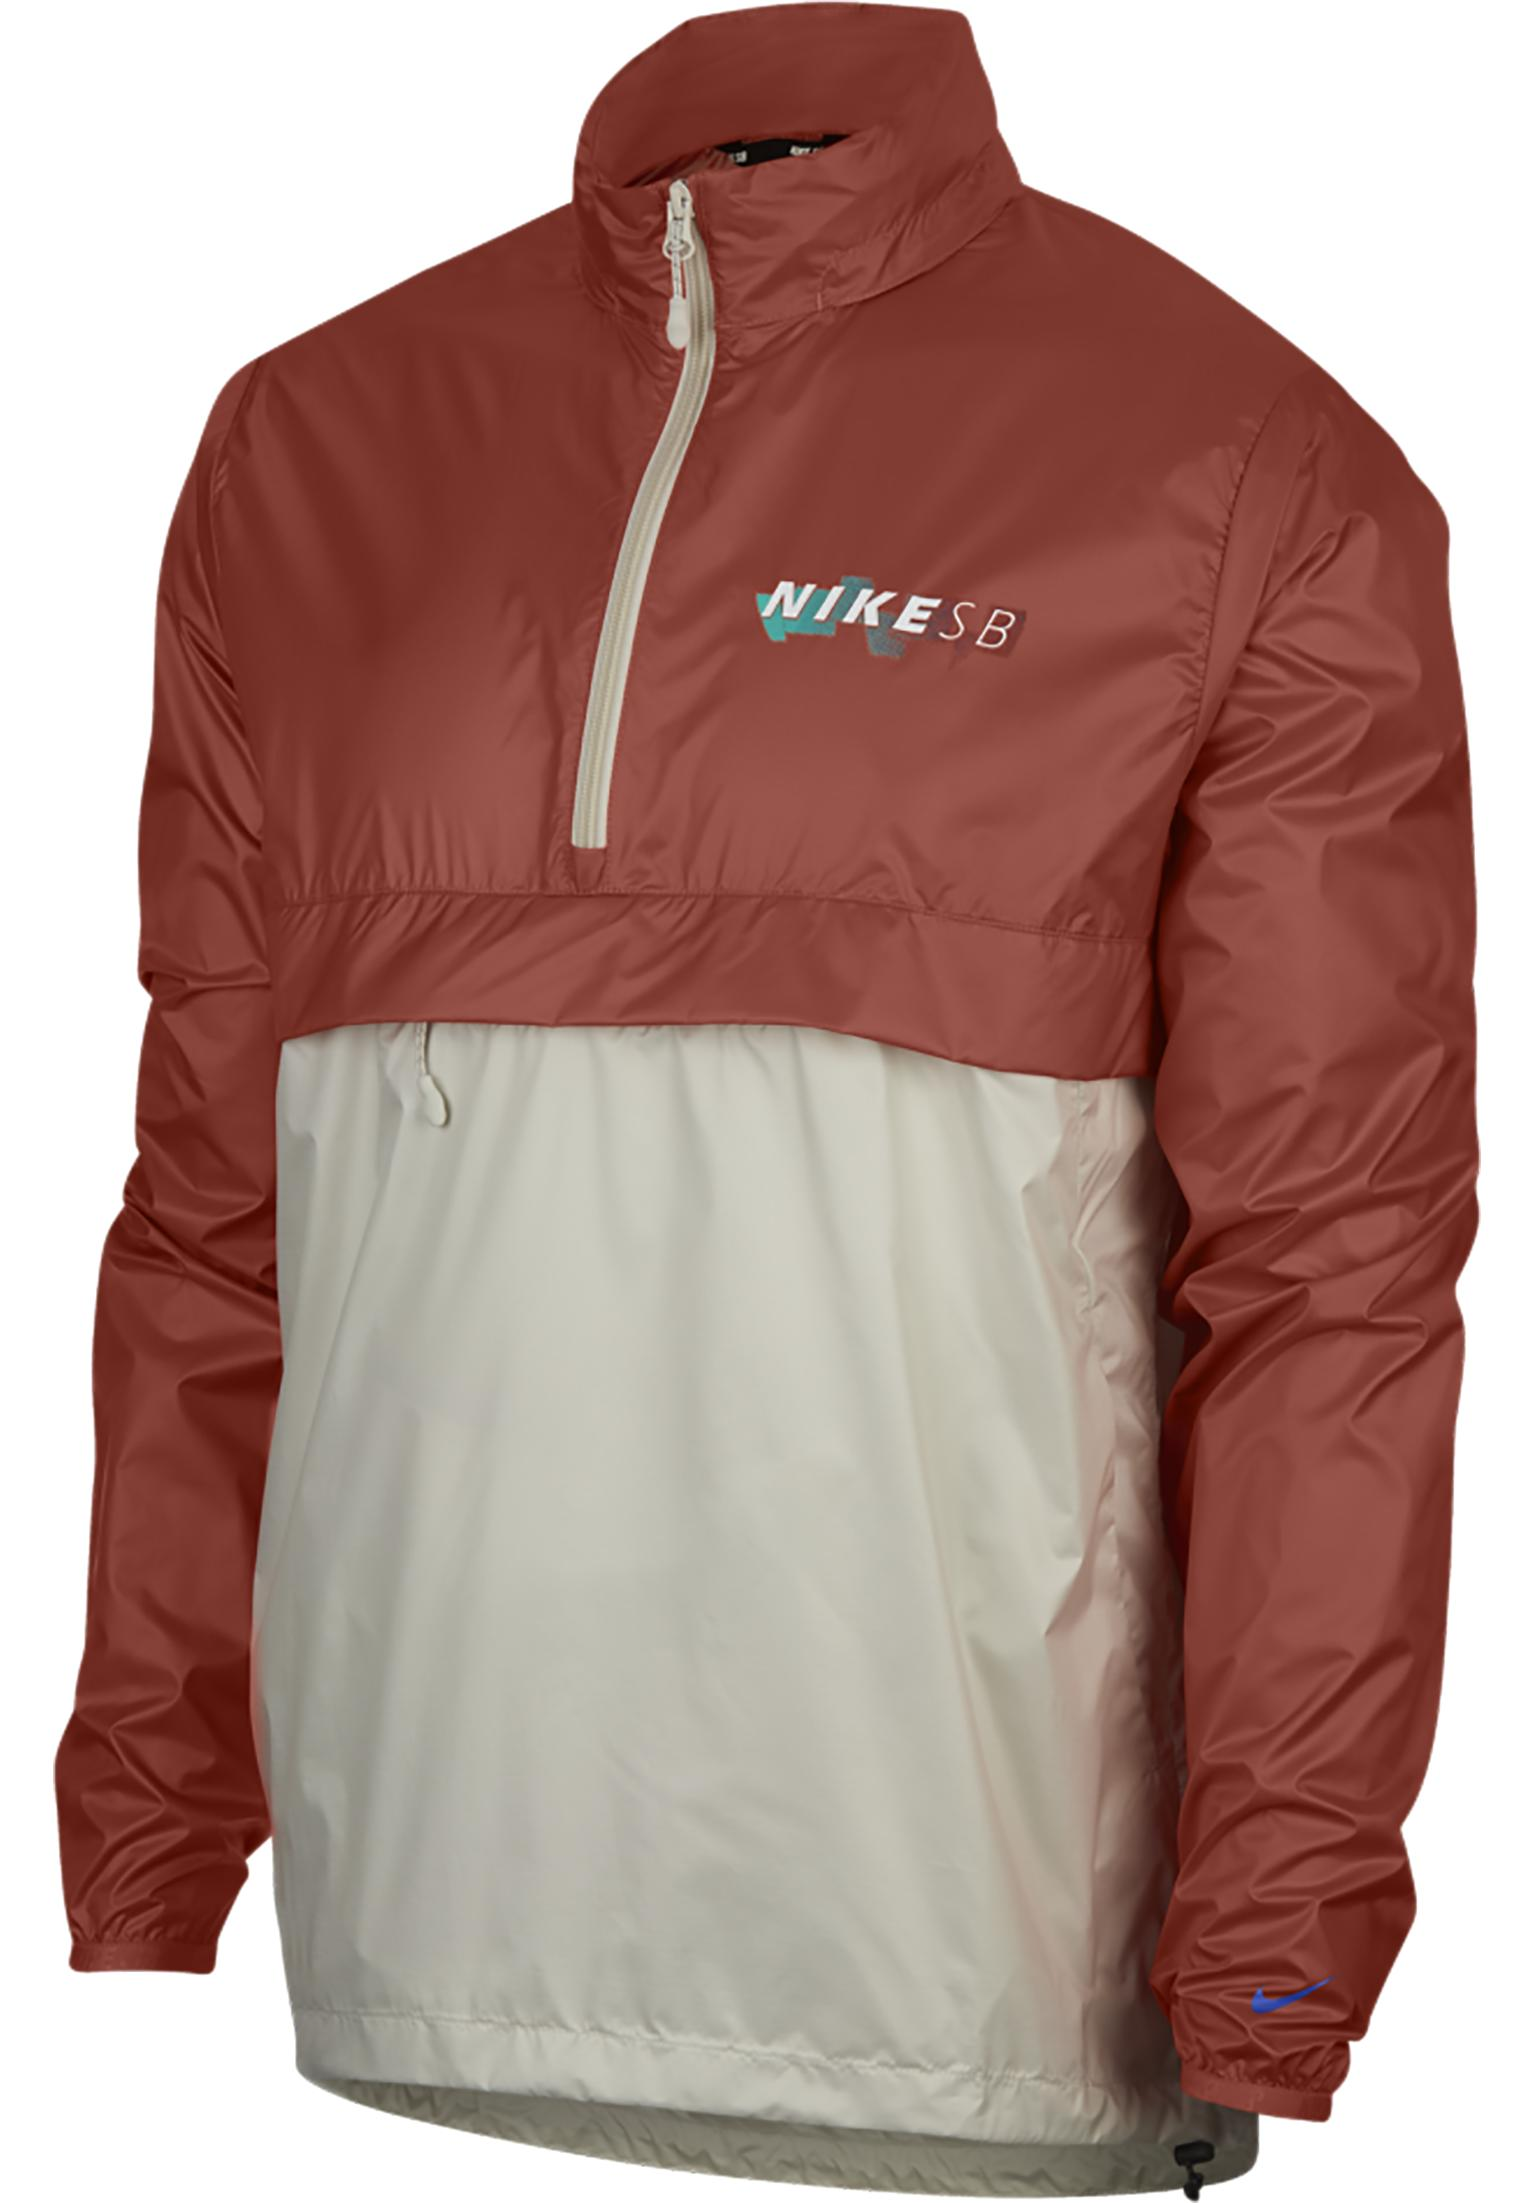 2a5a8b0f884d Anorak Pack Hood Nike SB Windbreakers in vintagecoral for Men